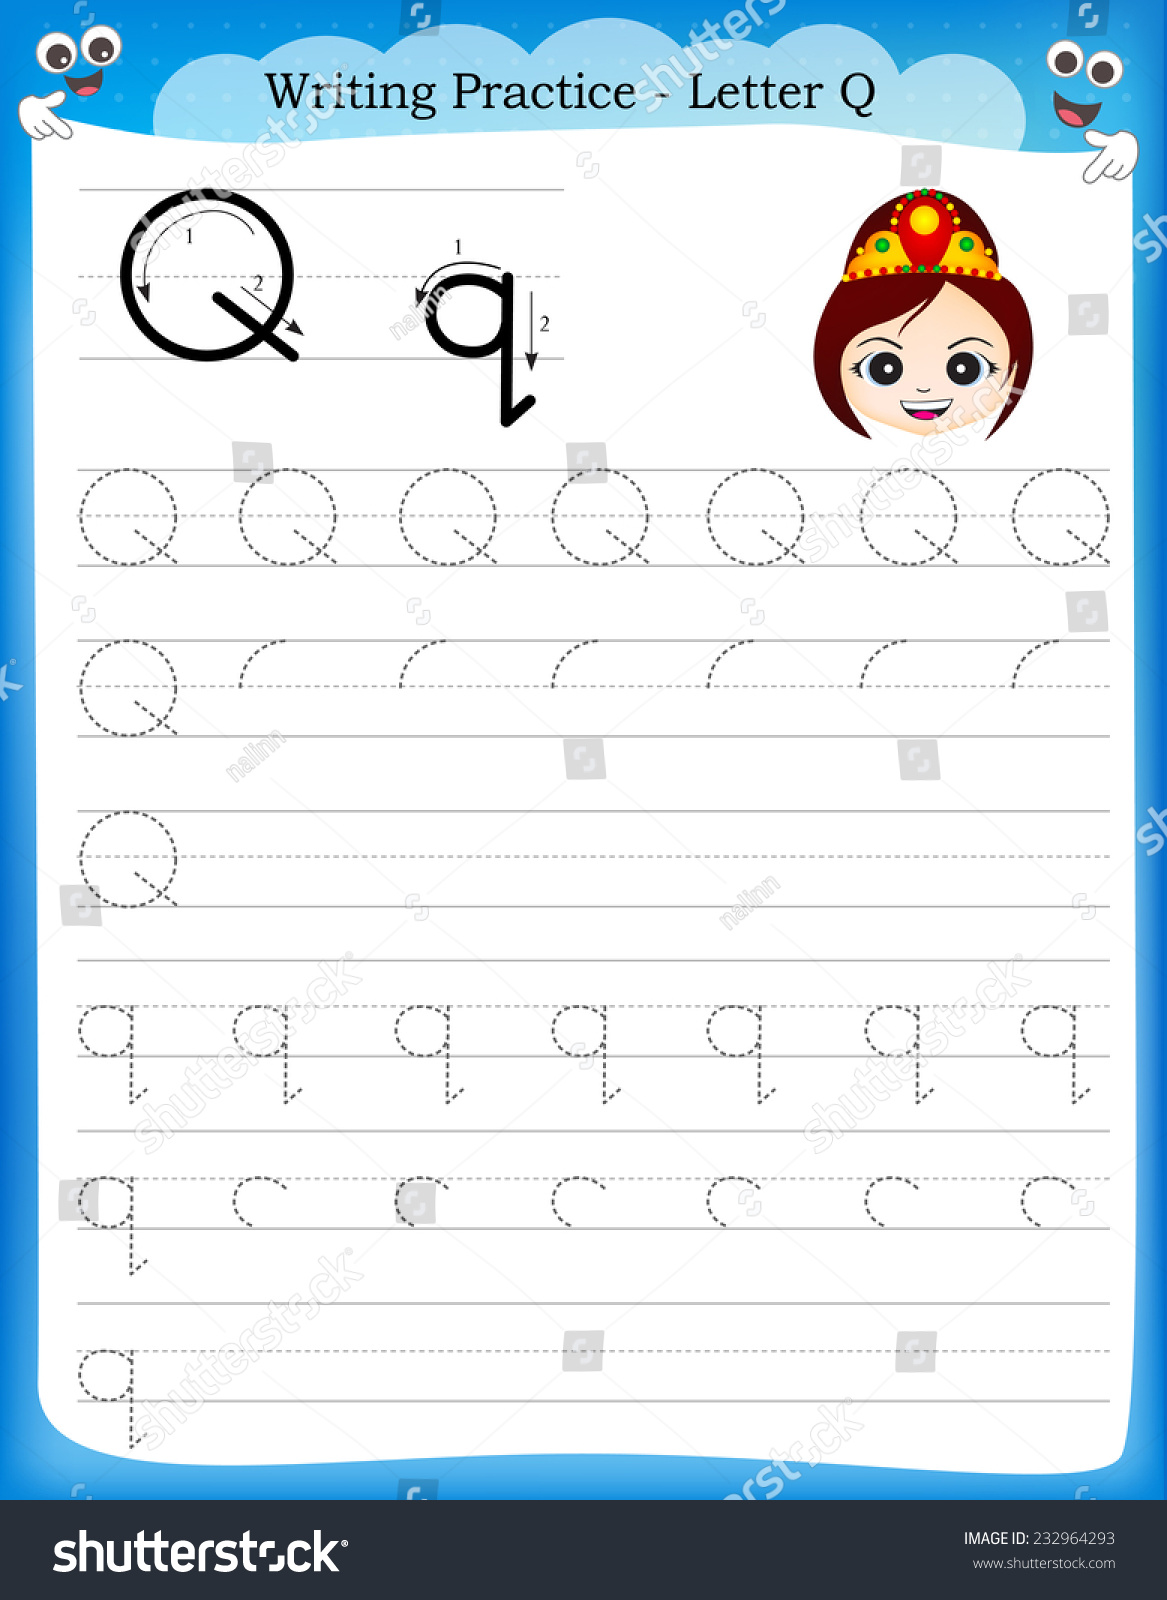 Writing Practice Letter Q Printable Worksheet With Clip Art For Preschool Kindergarten Kids To